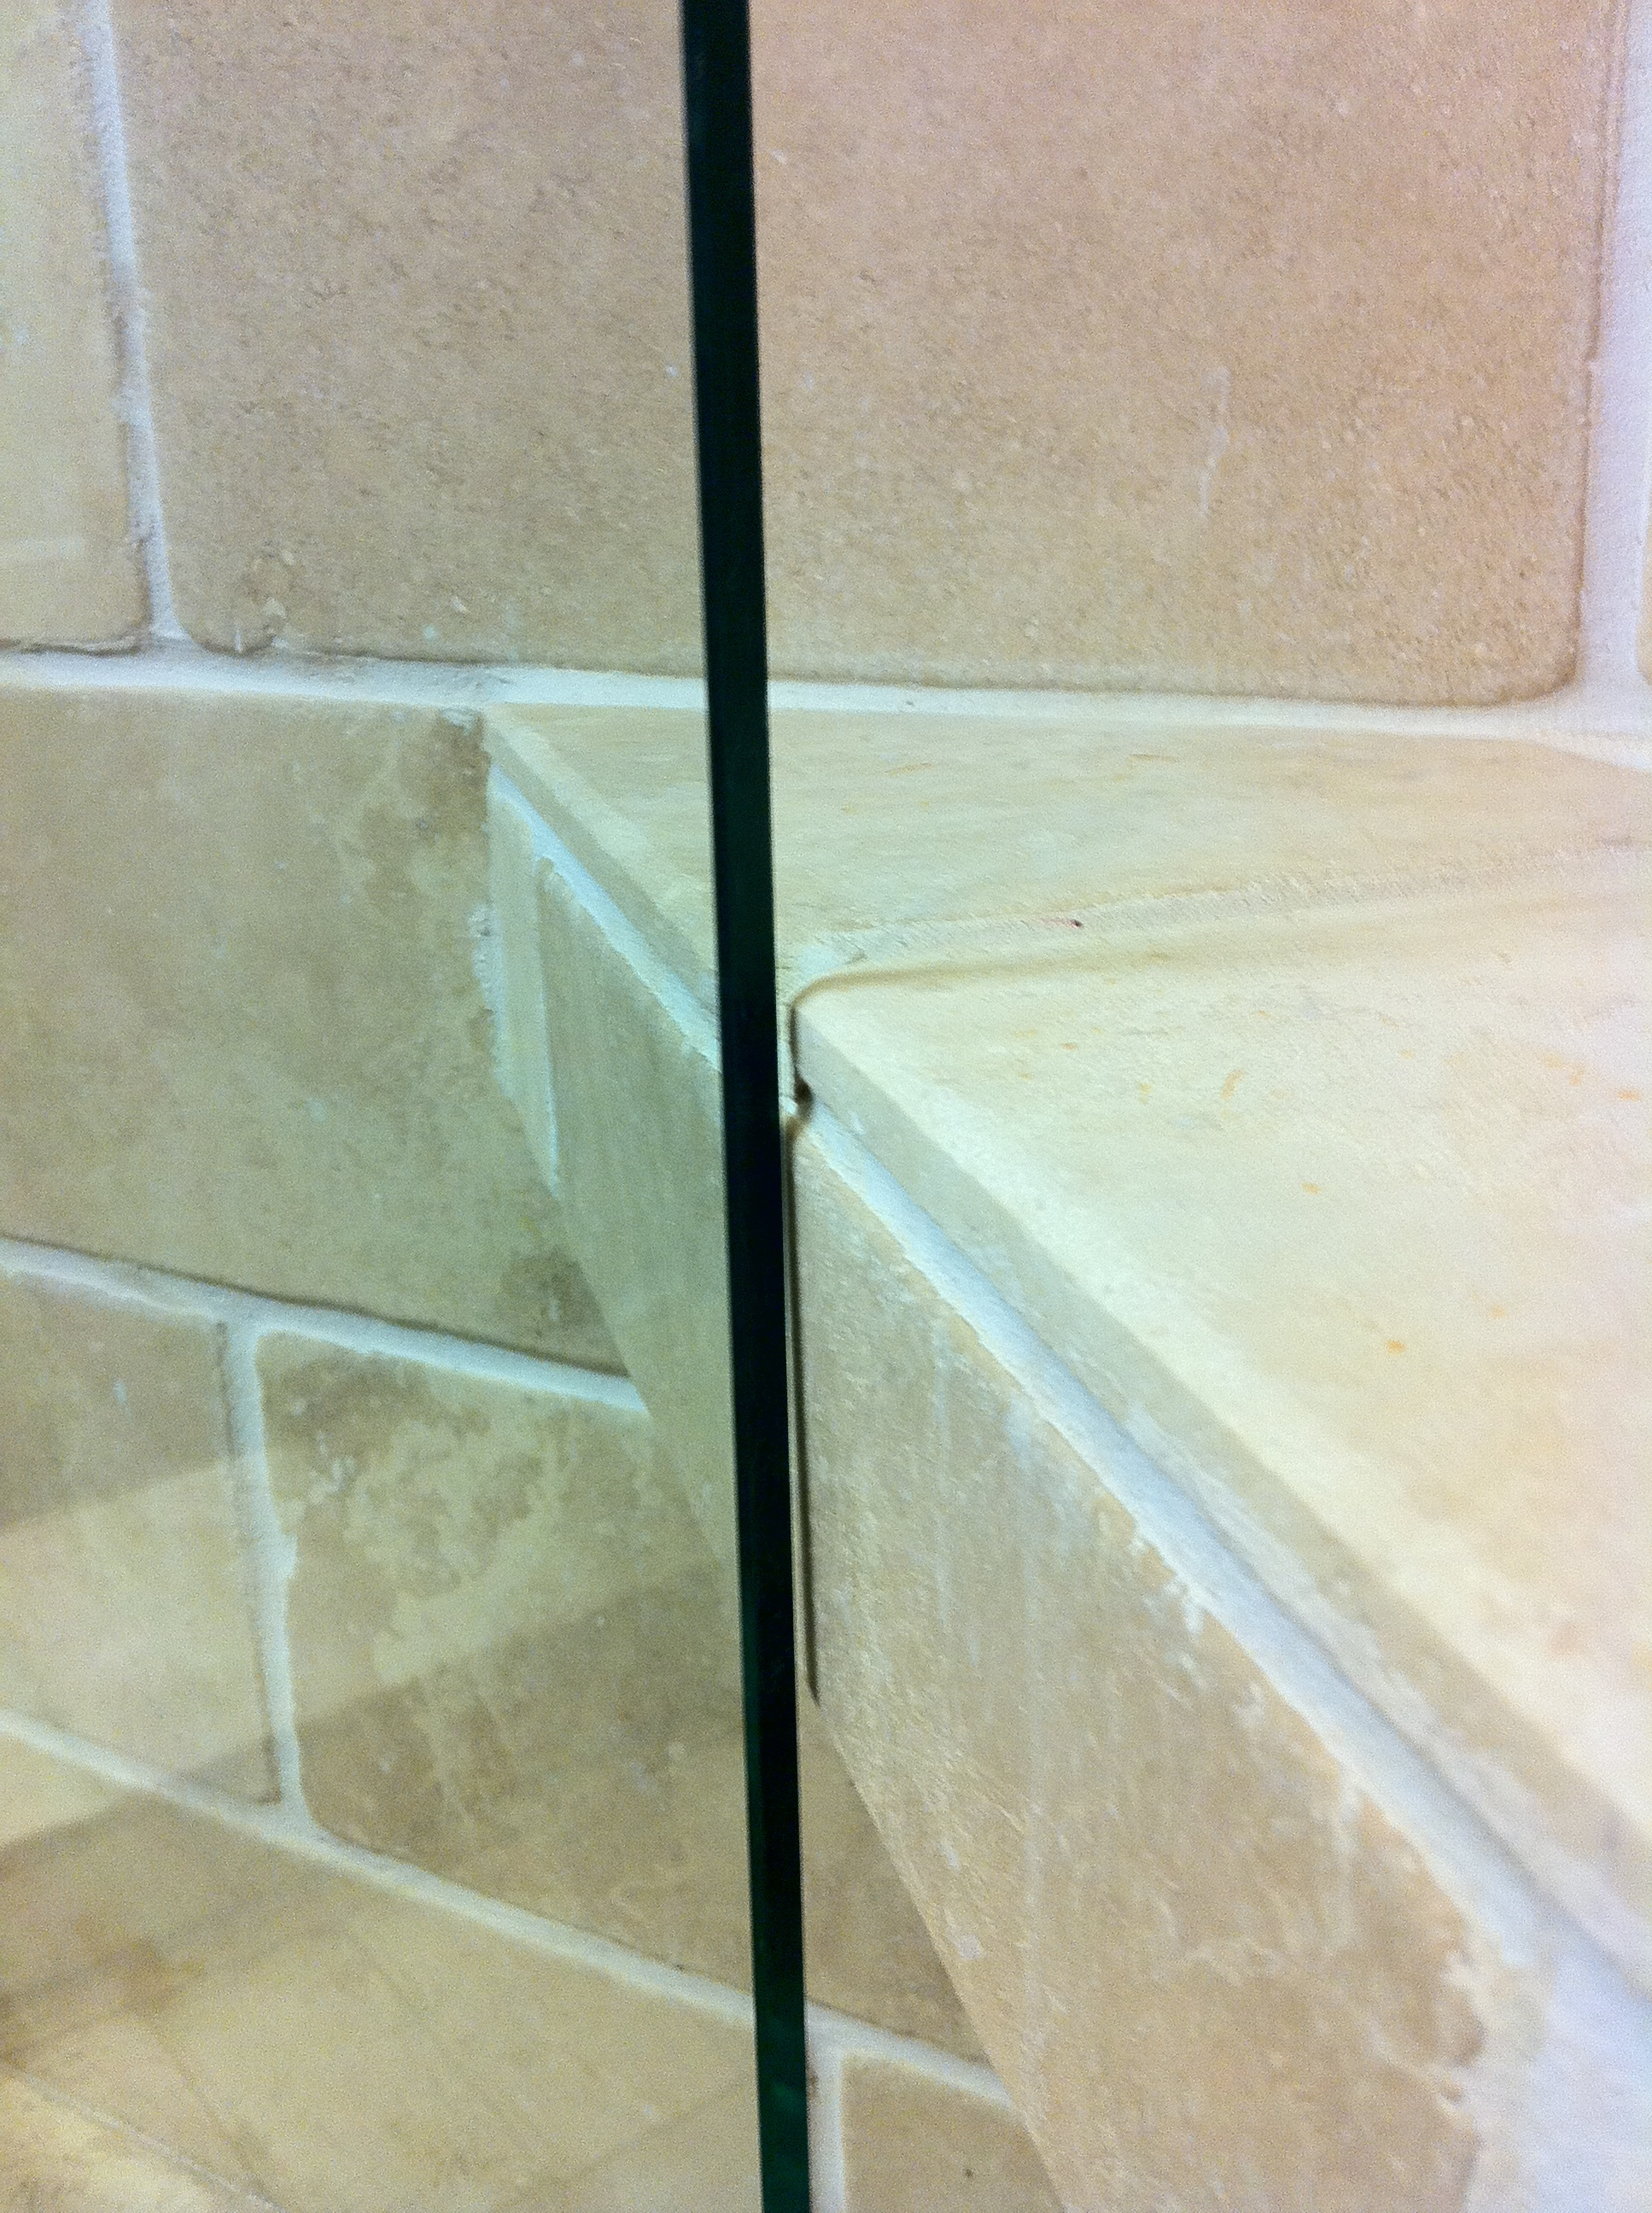 Shower Door Rubber Bumpers